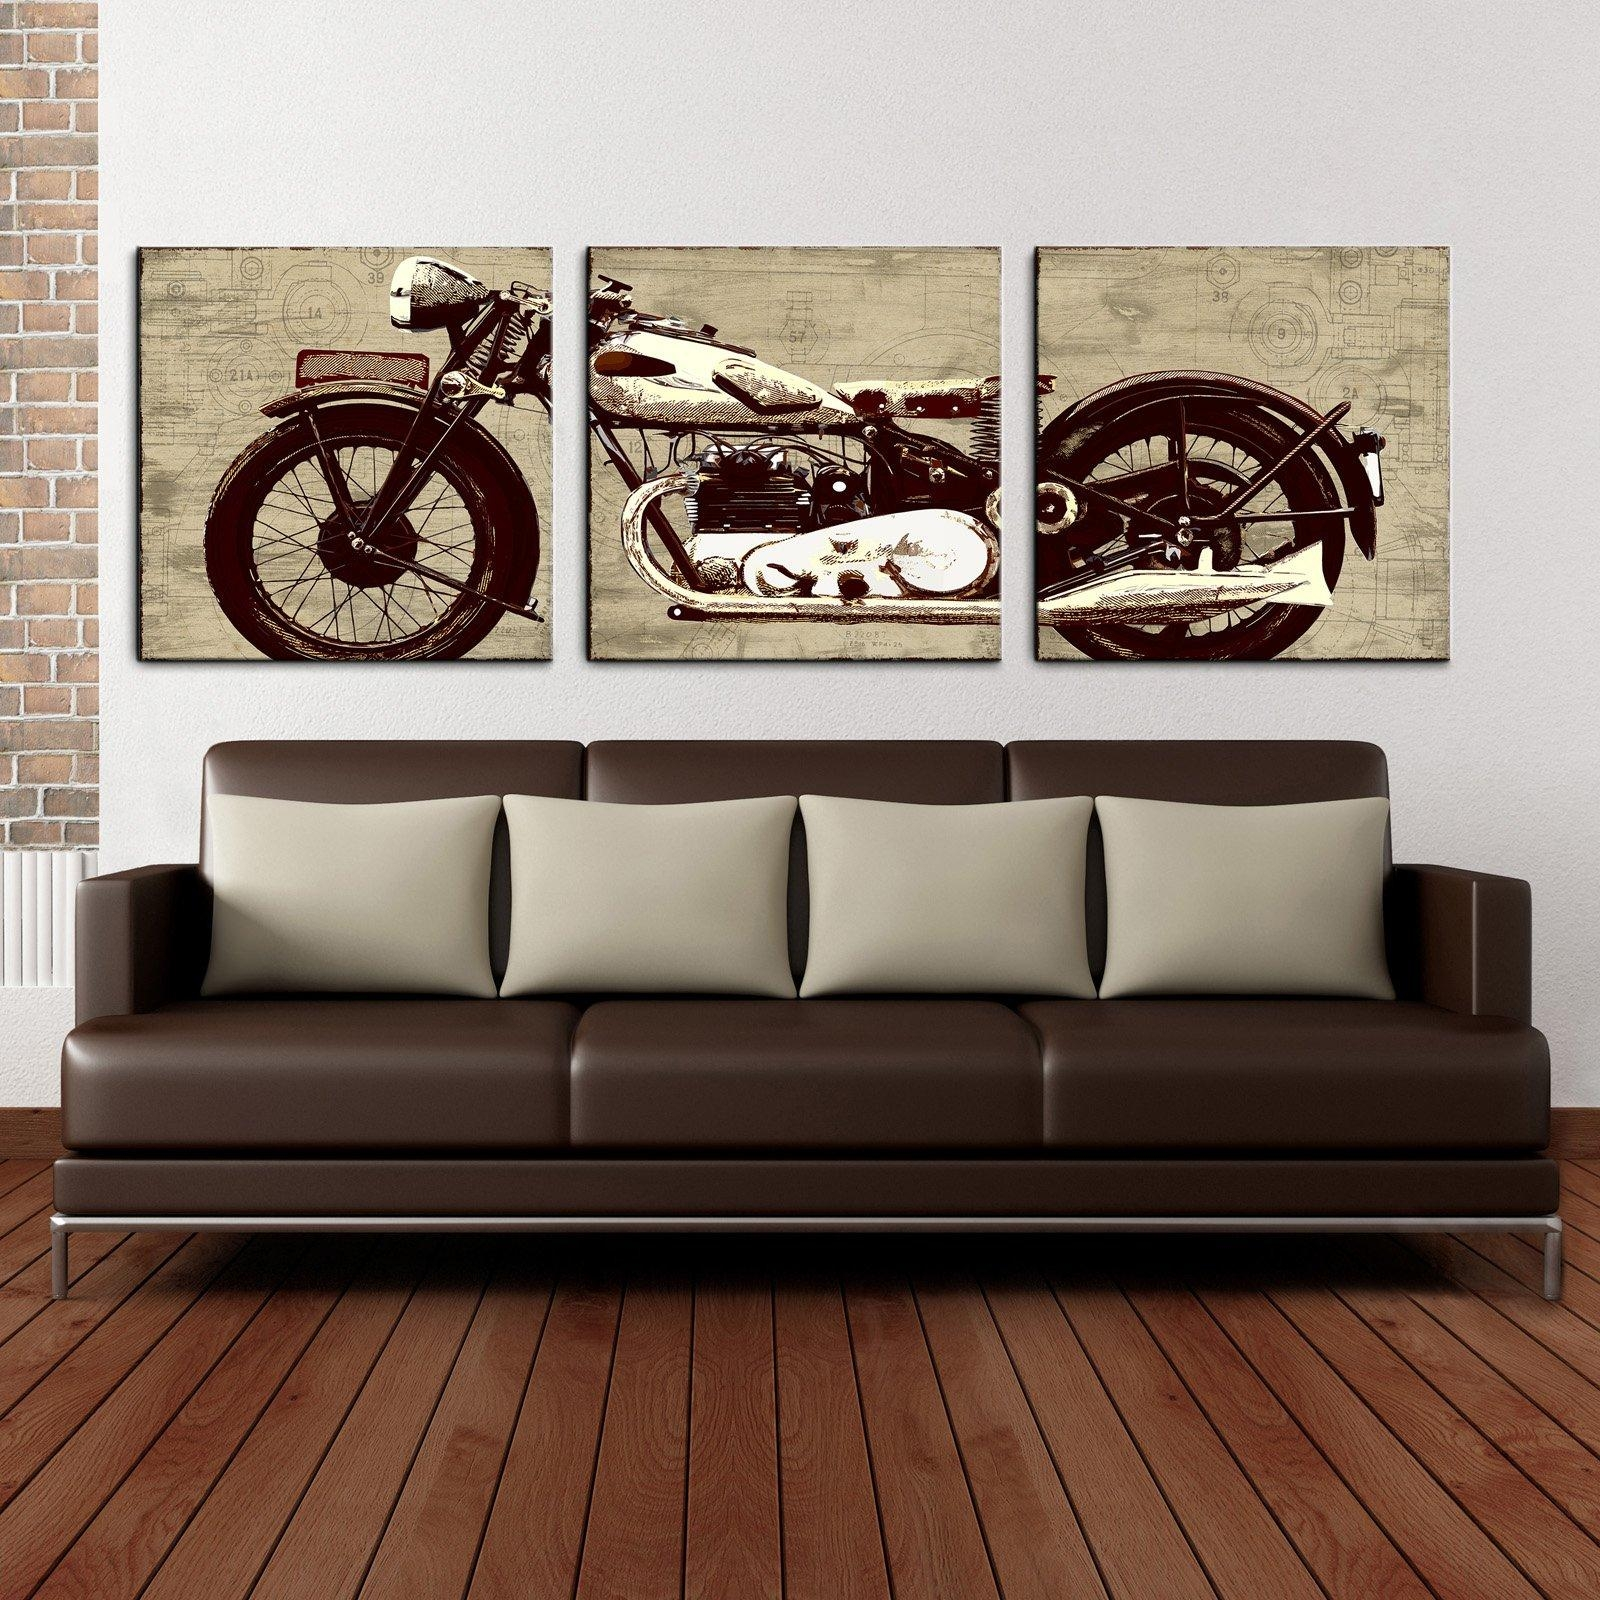 Motorcycle 24 X 72 Canvas Art Print Triptych | Hayneedle Inside Triptych Art For Sale (Image 8 of 20)